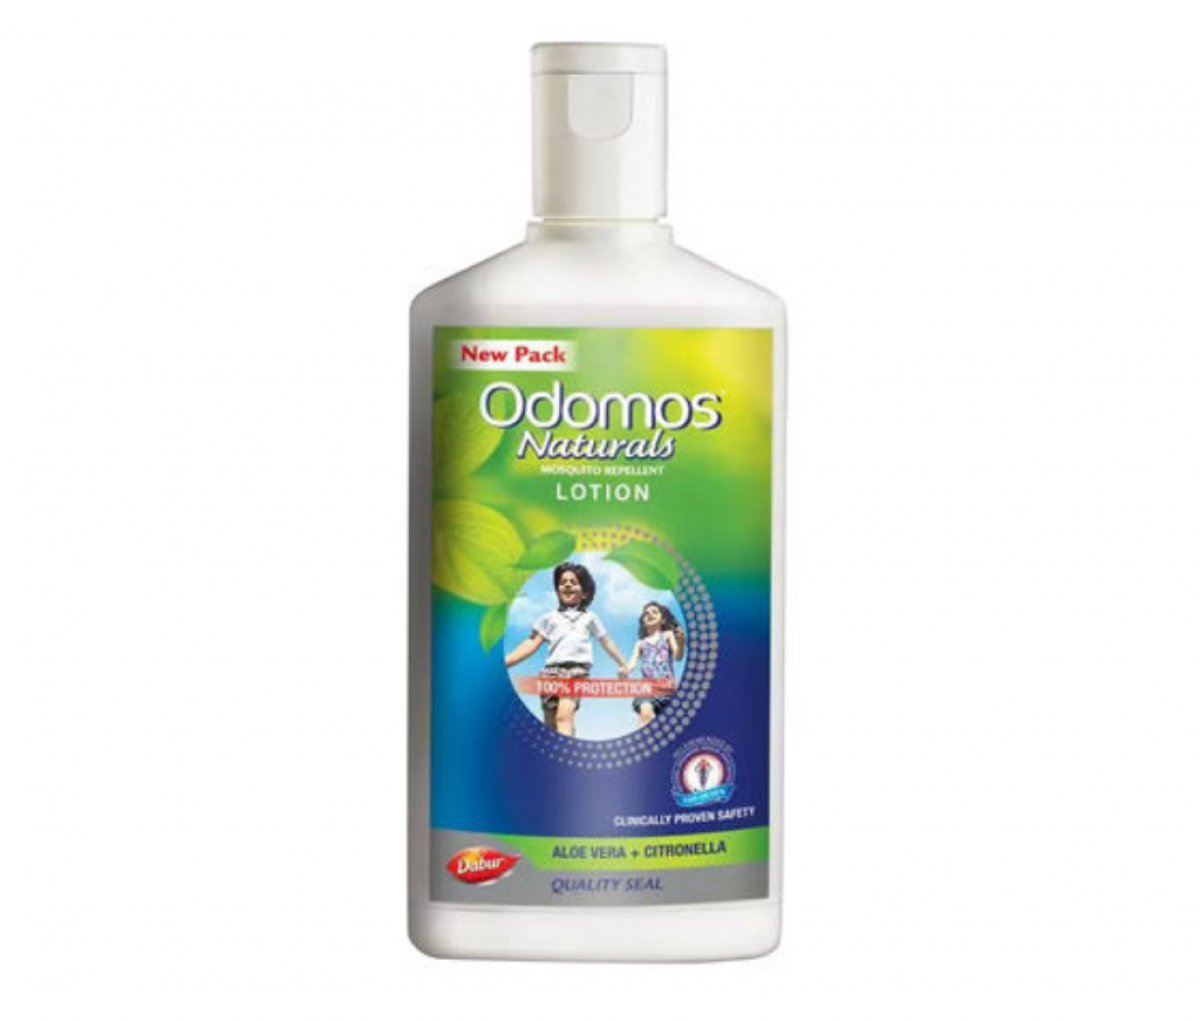 Odomos Mosquito Repellent Lotion 60ml